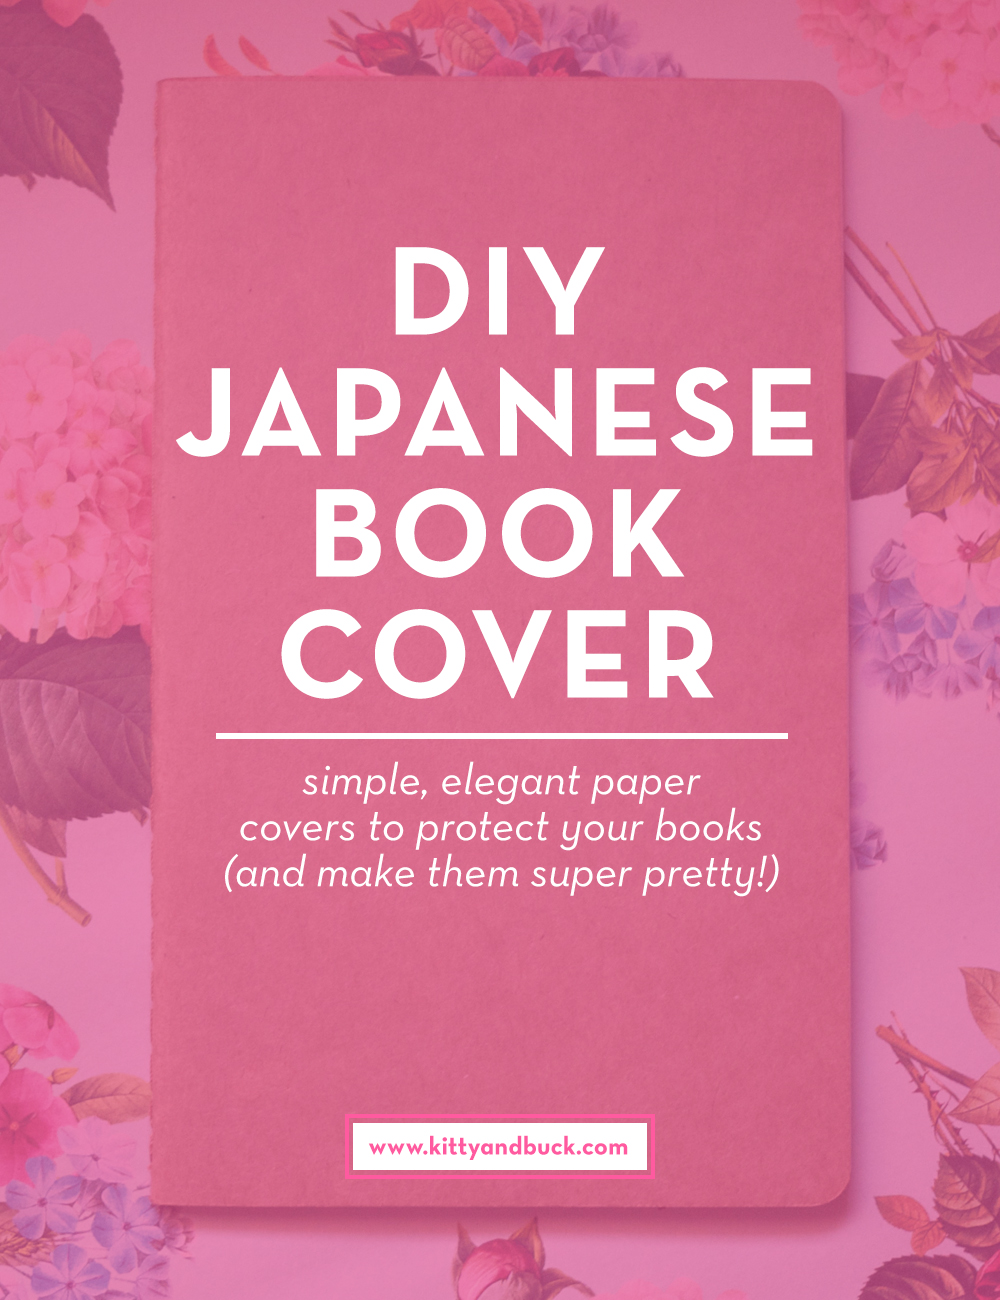 Fashion Book Cover Job : Diy japanese paper book cover — kitty buck